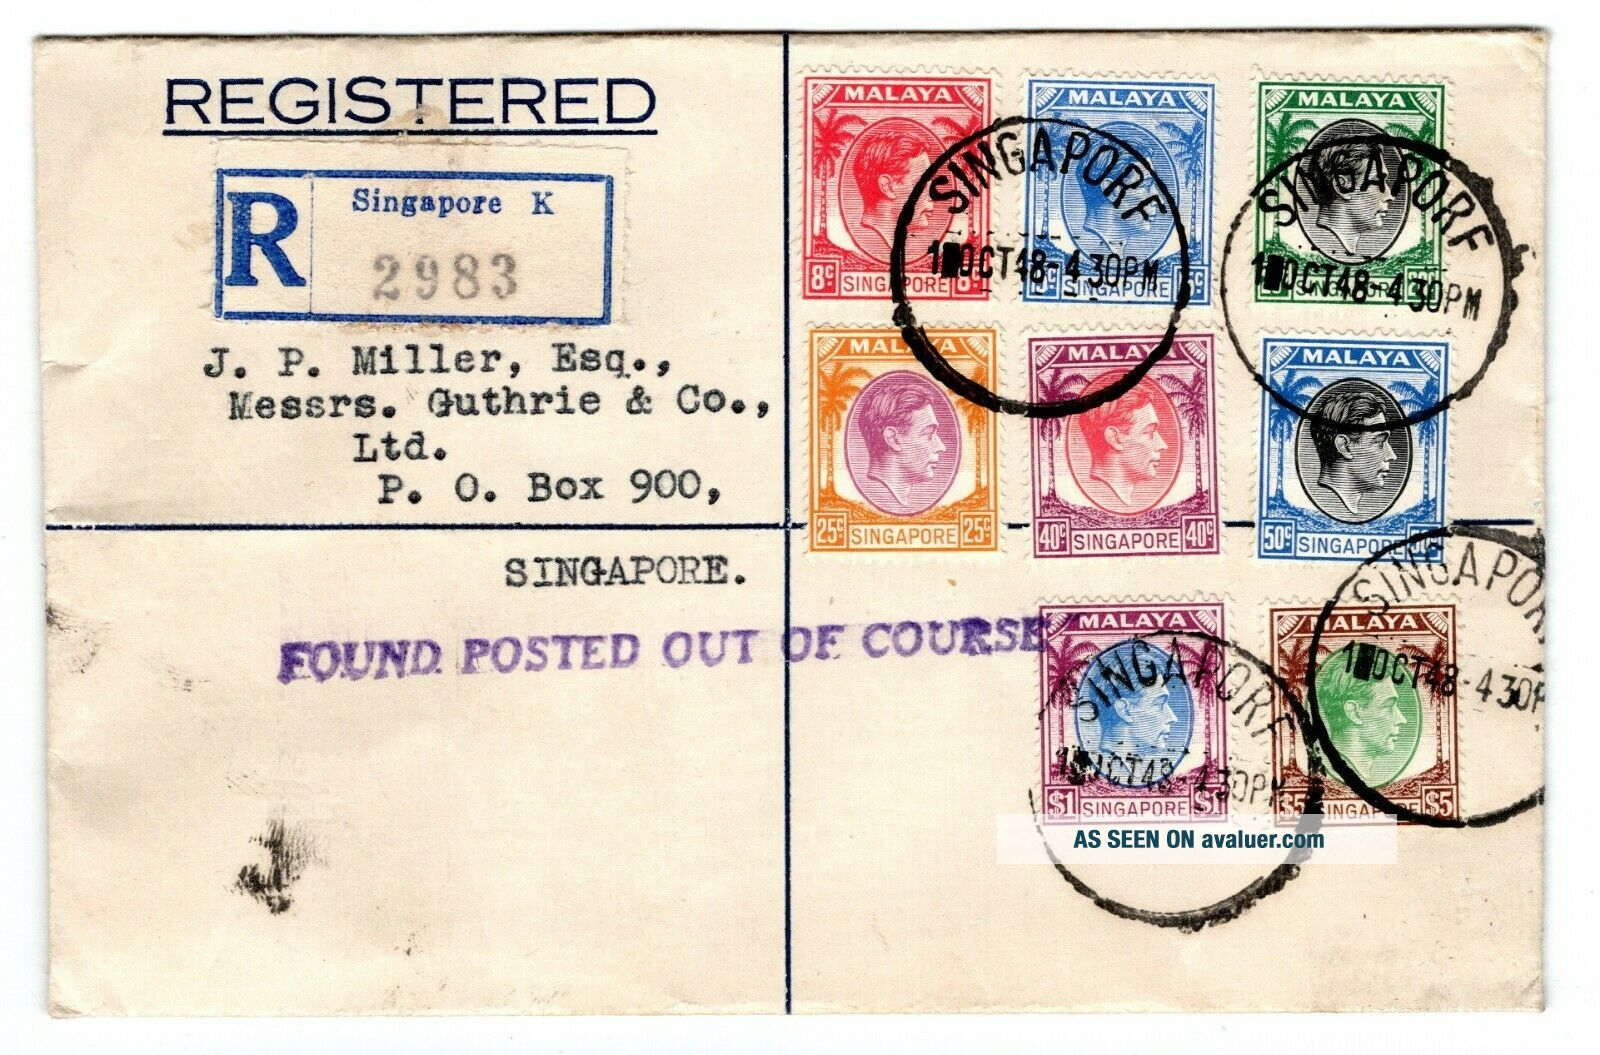 1948 Singapore Local Registered First Day Cover.